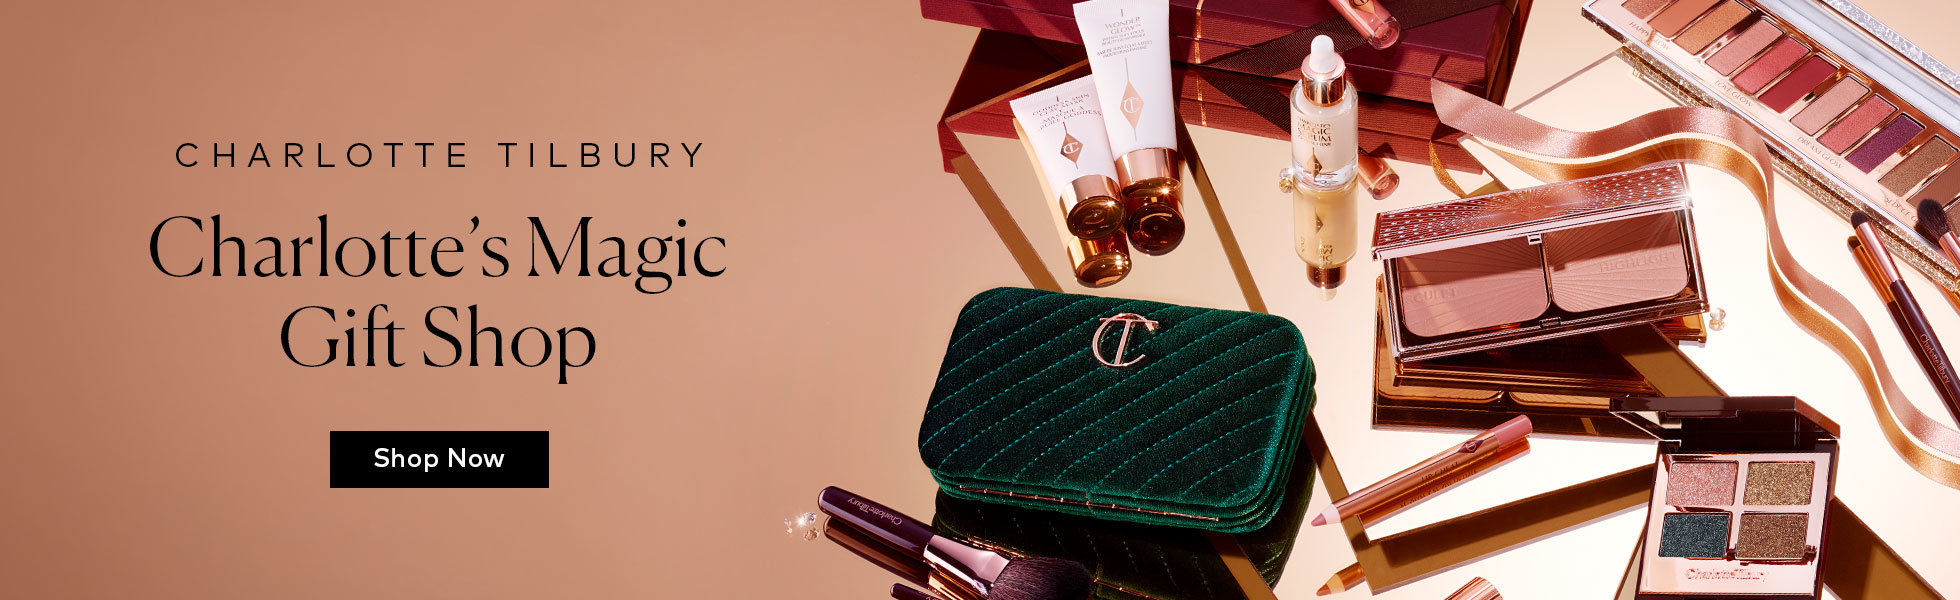 Shop Charlotte Tilbury's Holiday Collection on Beautylish.com